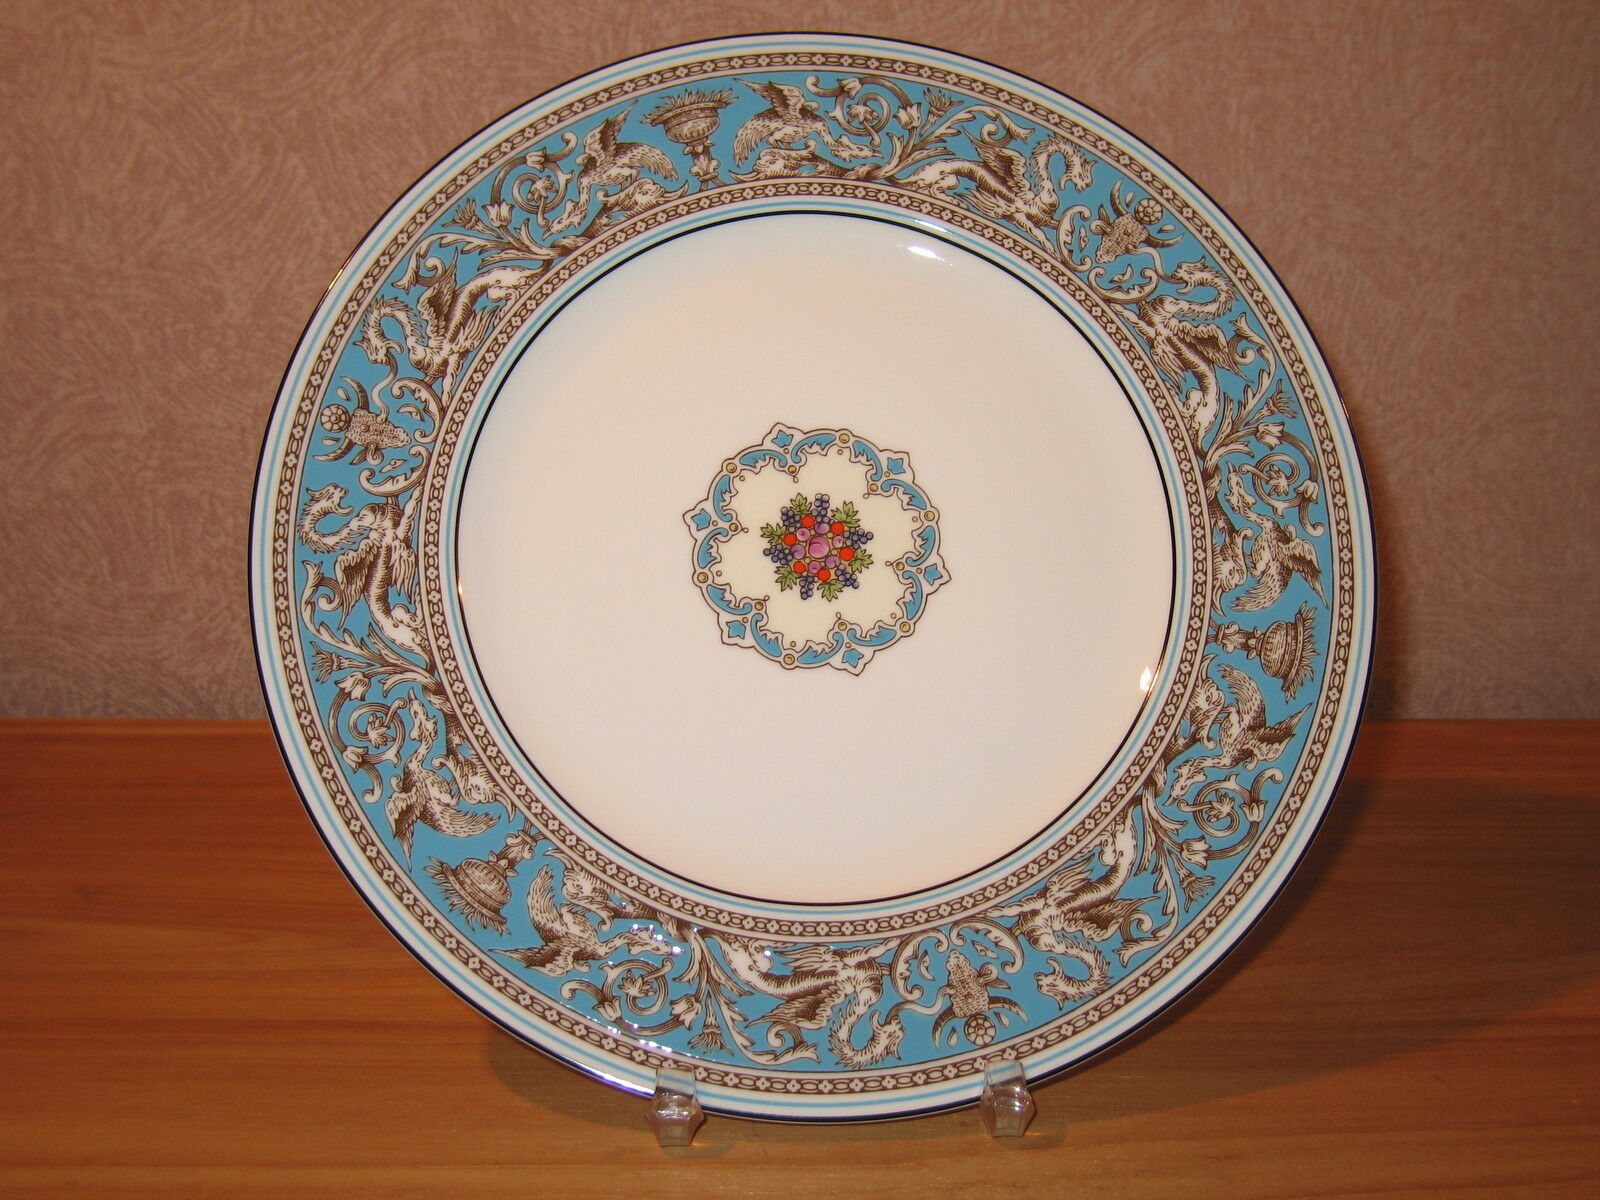 Wedgwood NEW Florentine Turquoise 501026 Assiette plate 27cm 1004 1 Plate